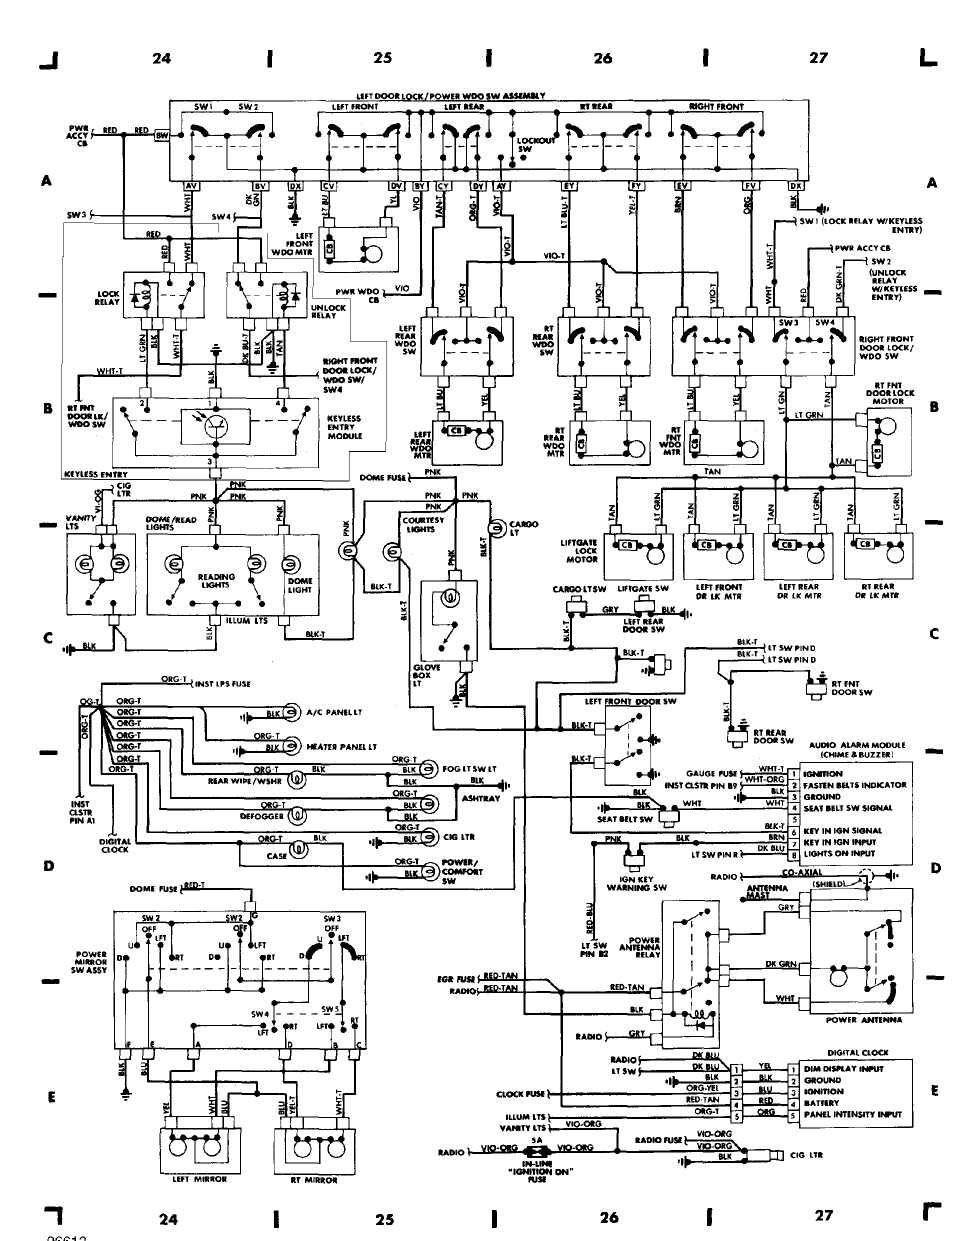 wiring_diagrams_html_61f5e0ad wiring diagrams 1984 1991 jeep cherokee (xj) jeep 95 jeep wrangler wiring harness diagram at alyssarenee.co